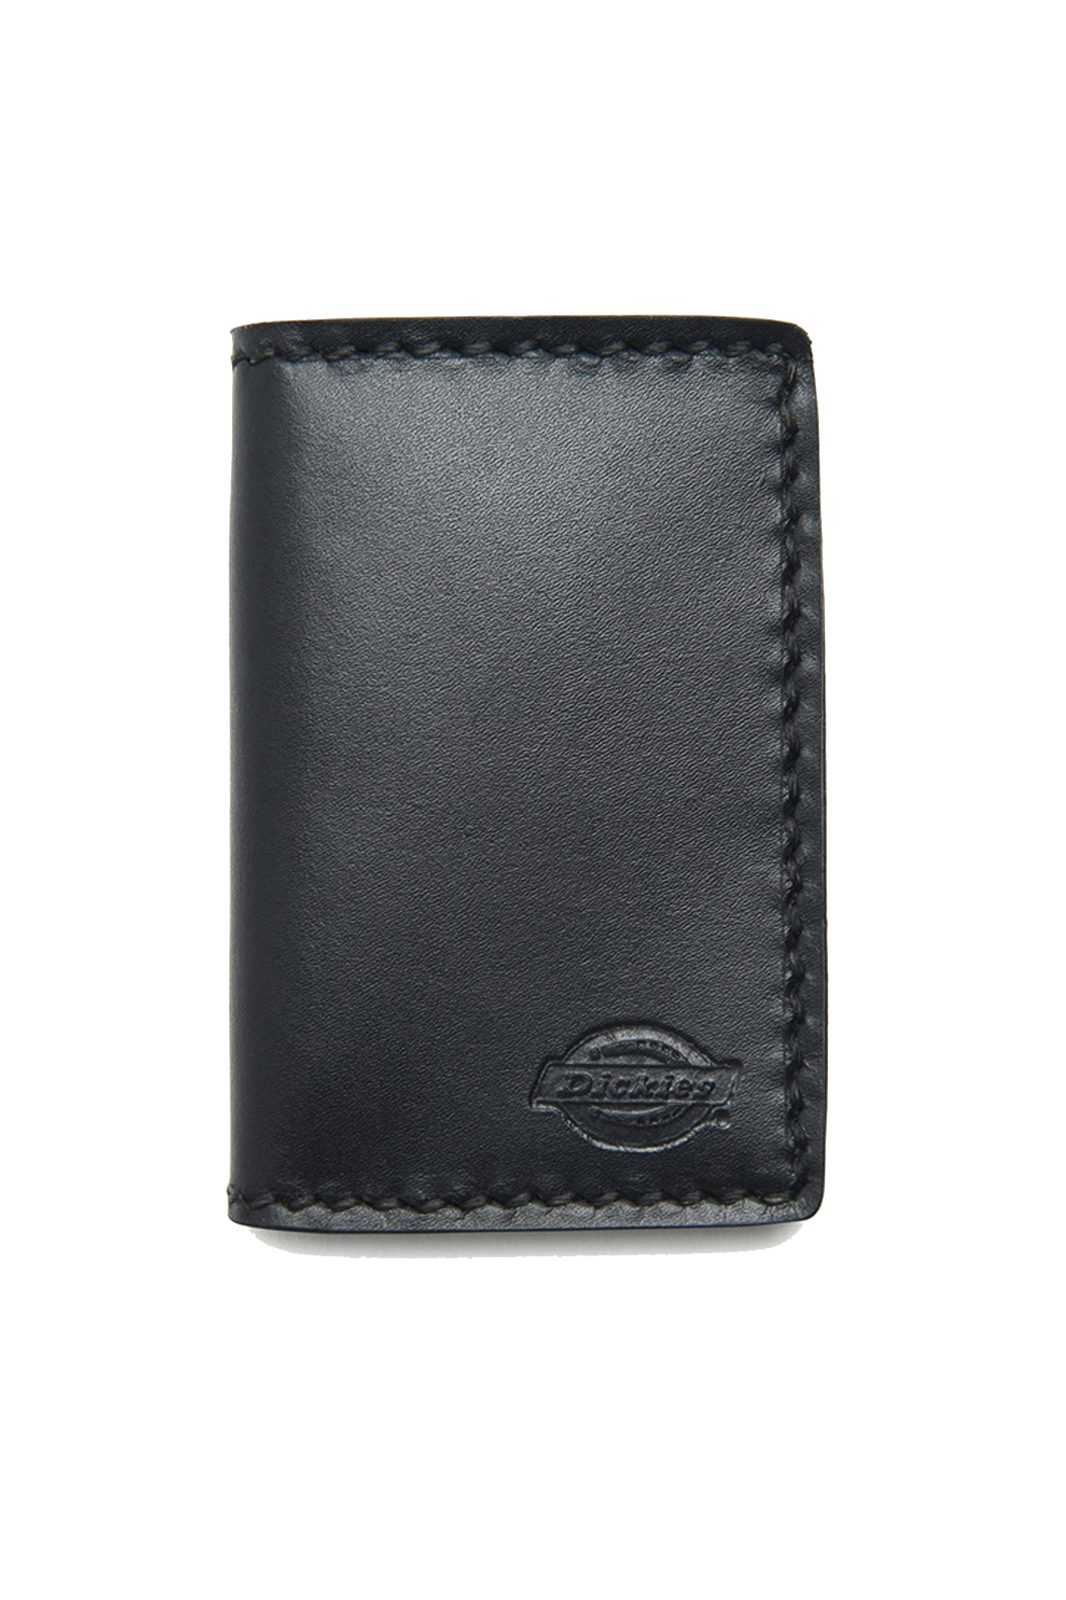 Lunenburg Wallet